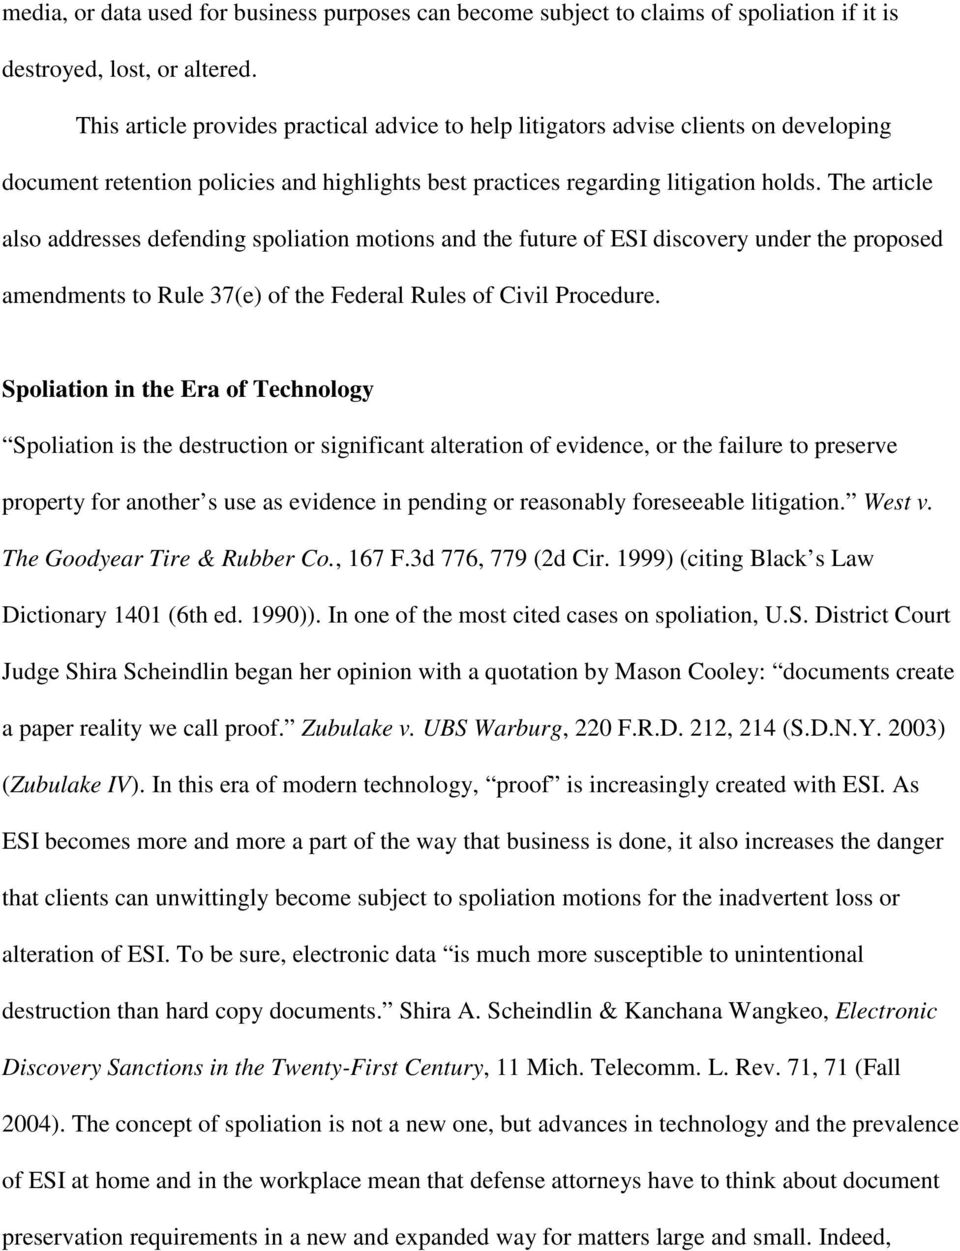 The article also addresses defending spoliation motions and the future of ESI discovery under the proposed amendments to Rule 37(e) of the Federal Rules of Civil Procedure.